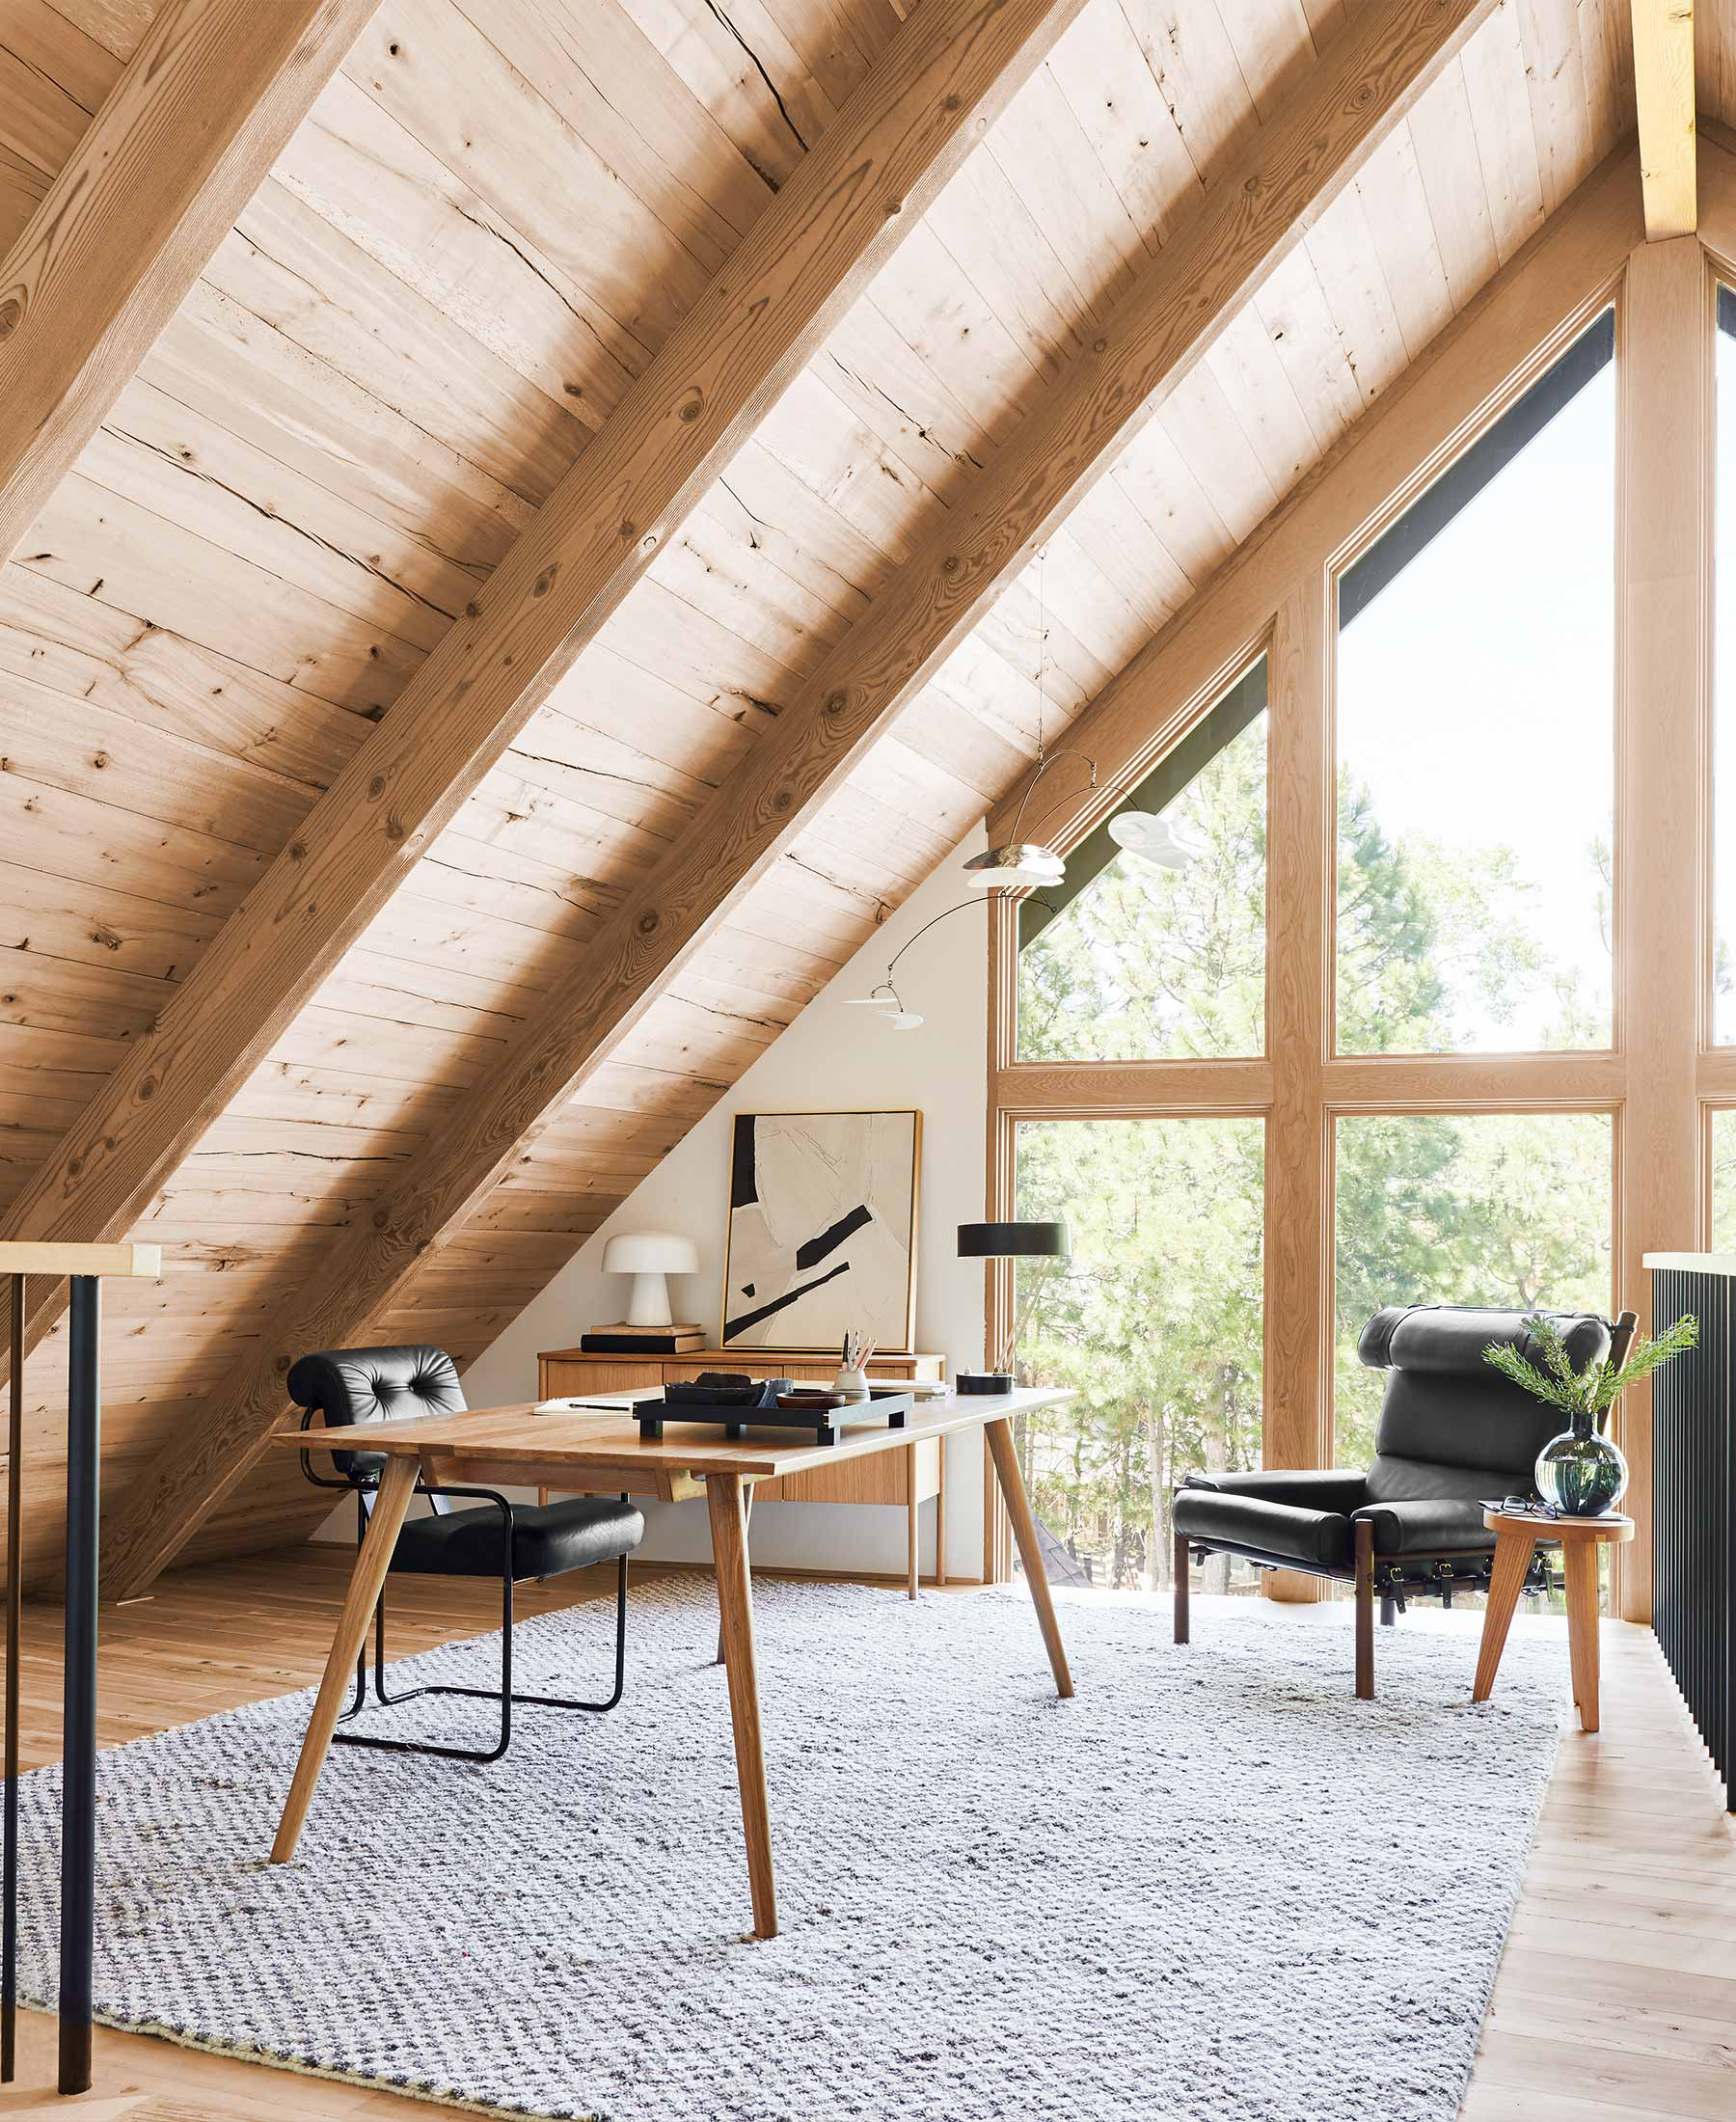 A wood and beam ceiling is featured in this home office space